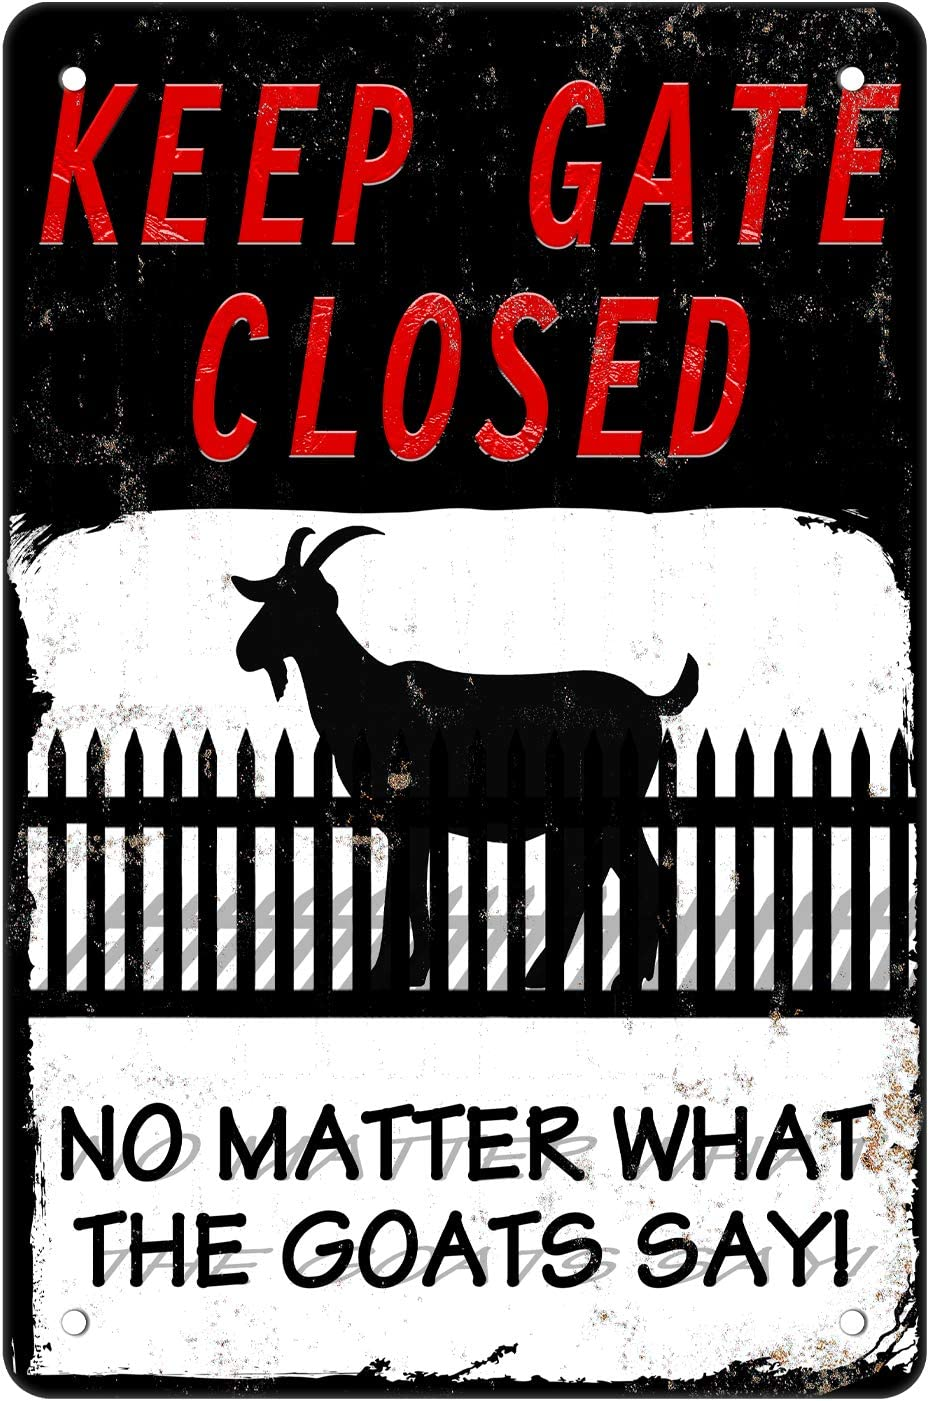 MuaToo Warning Sign Goats Outdoor -'Keep The Gate Closed No Matter What The Goats Say',8x12inch Tin Sign Funny Novelty Caution Goats Farm House Barn Sign Metal for Fence Wall Gate